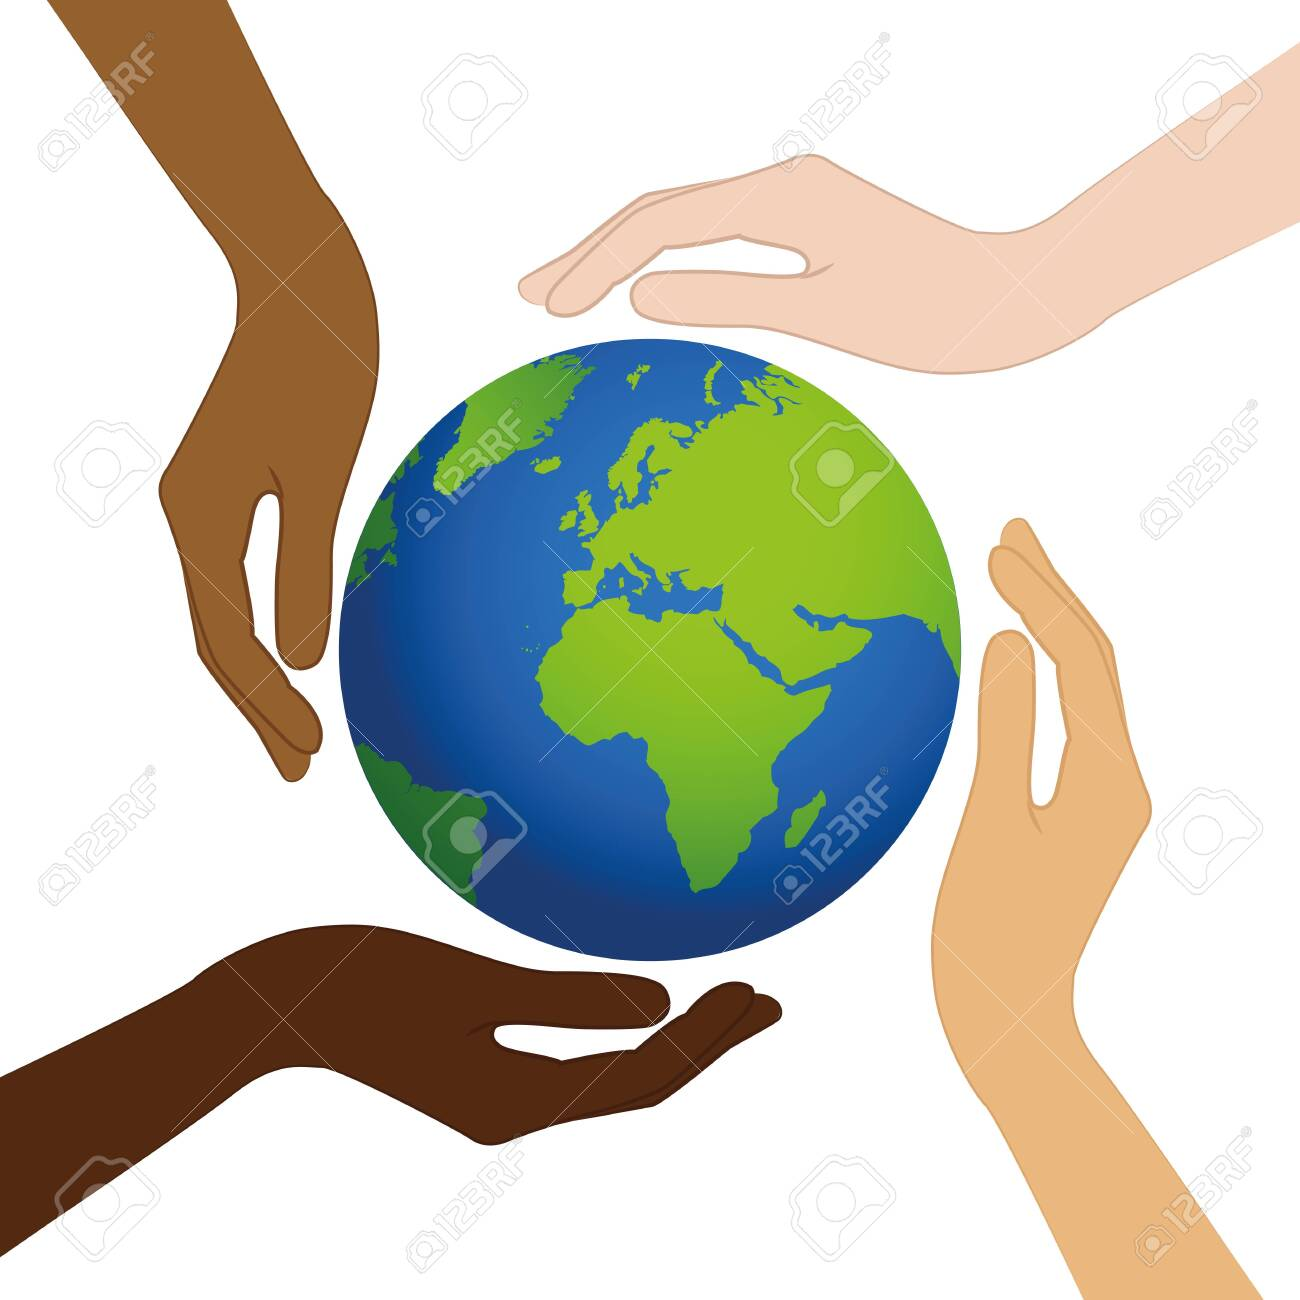 planet earth in the middle of human hands with different skin colors vector illustration EPS10 - 123912880